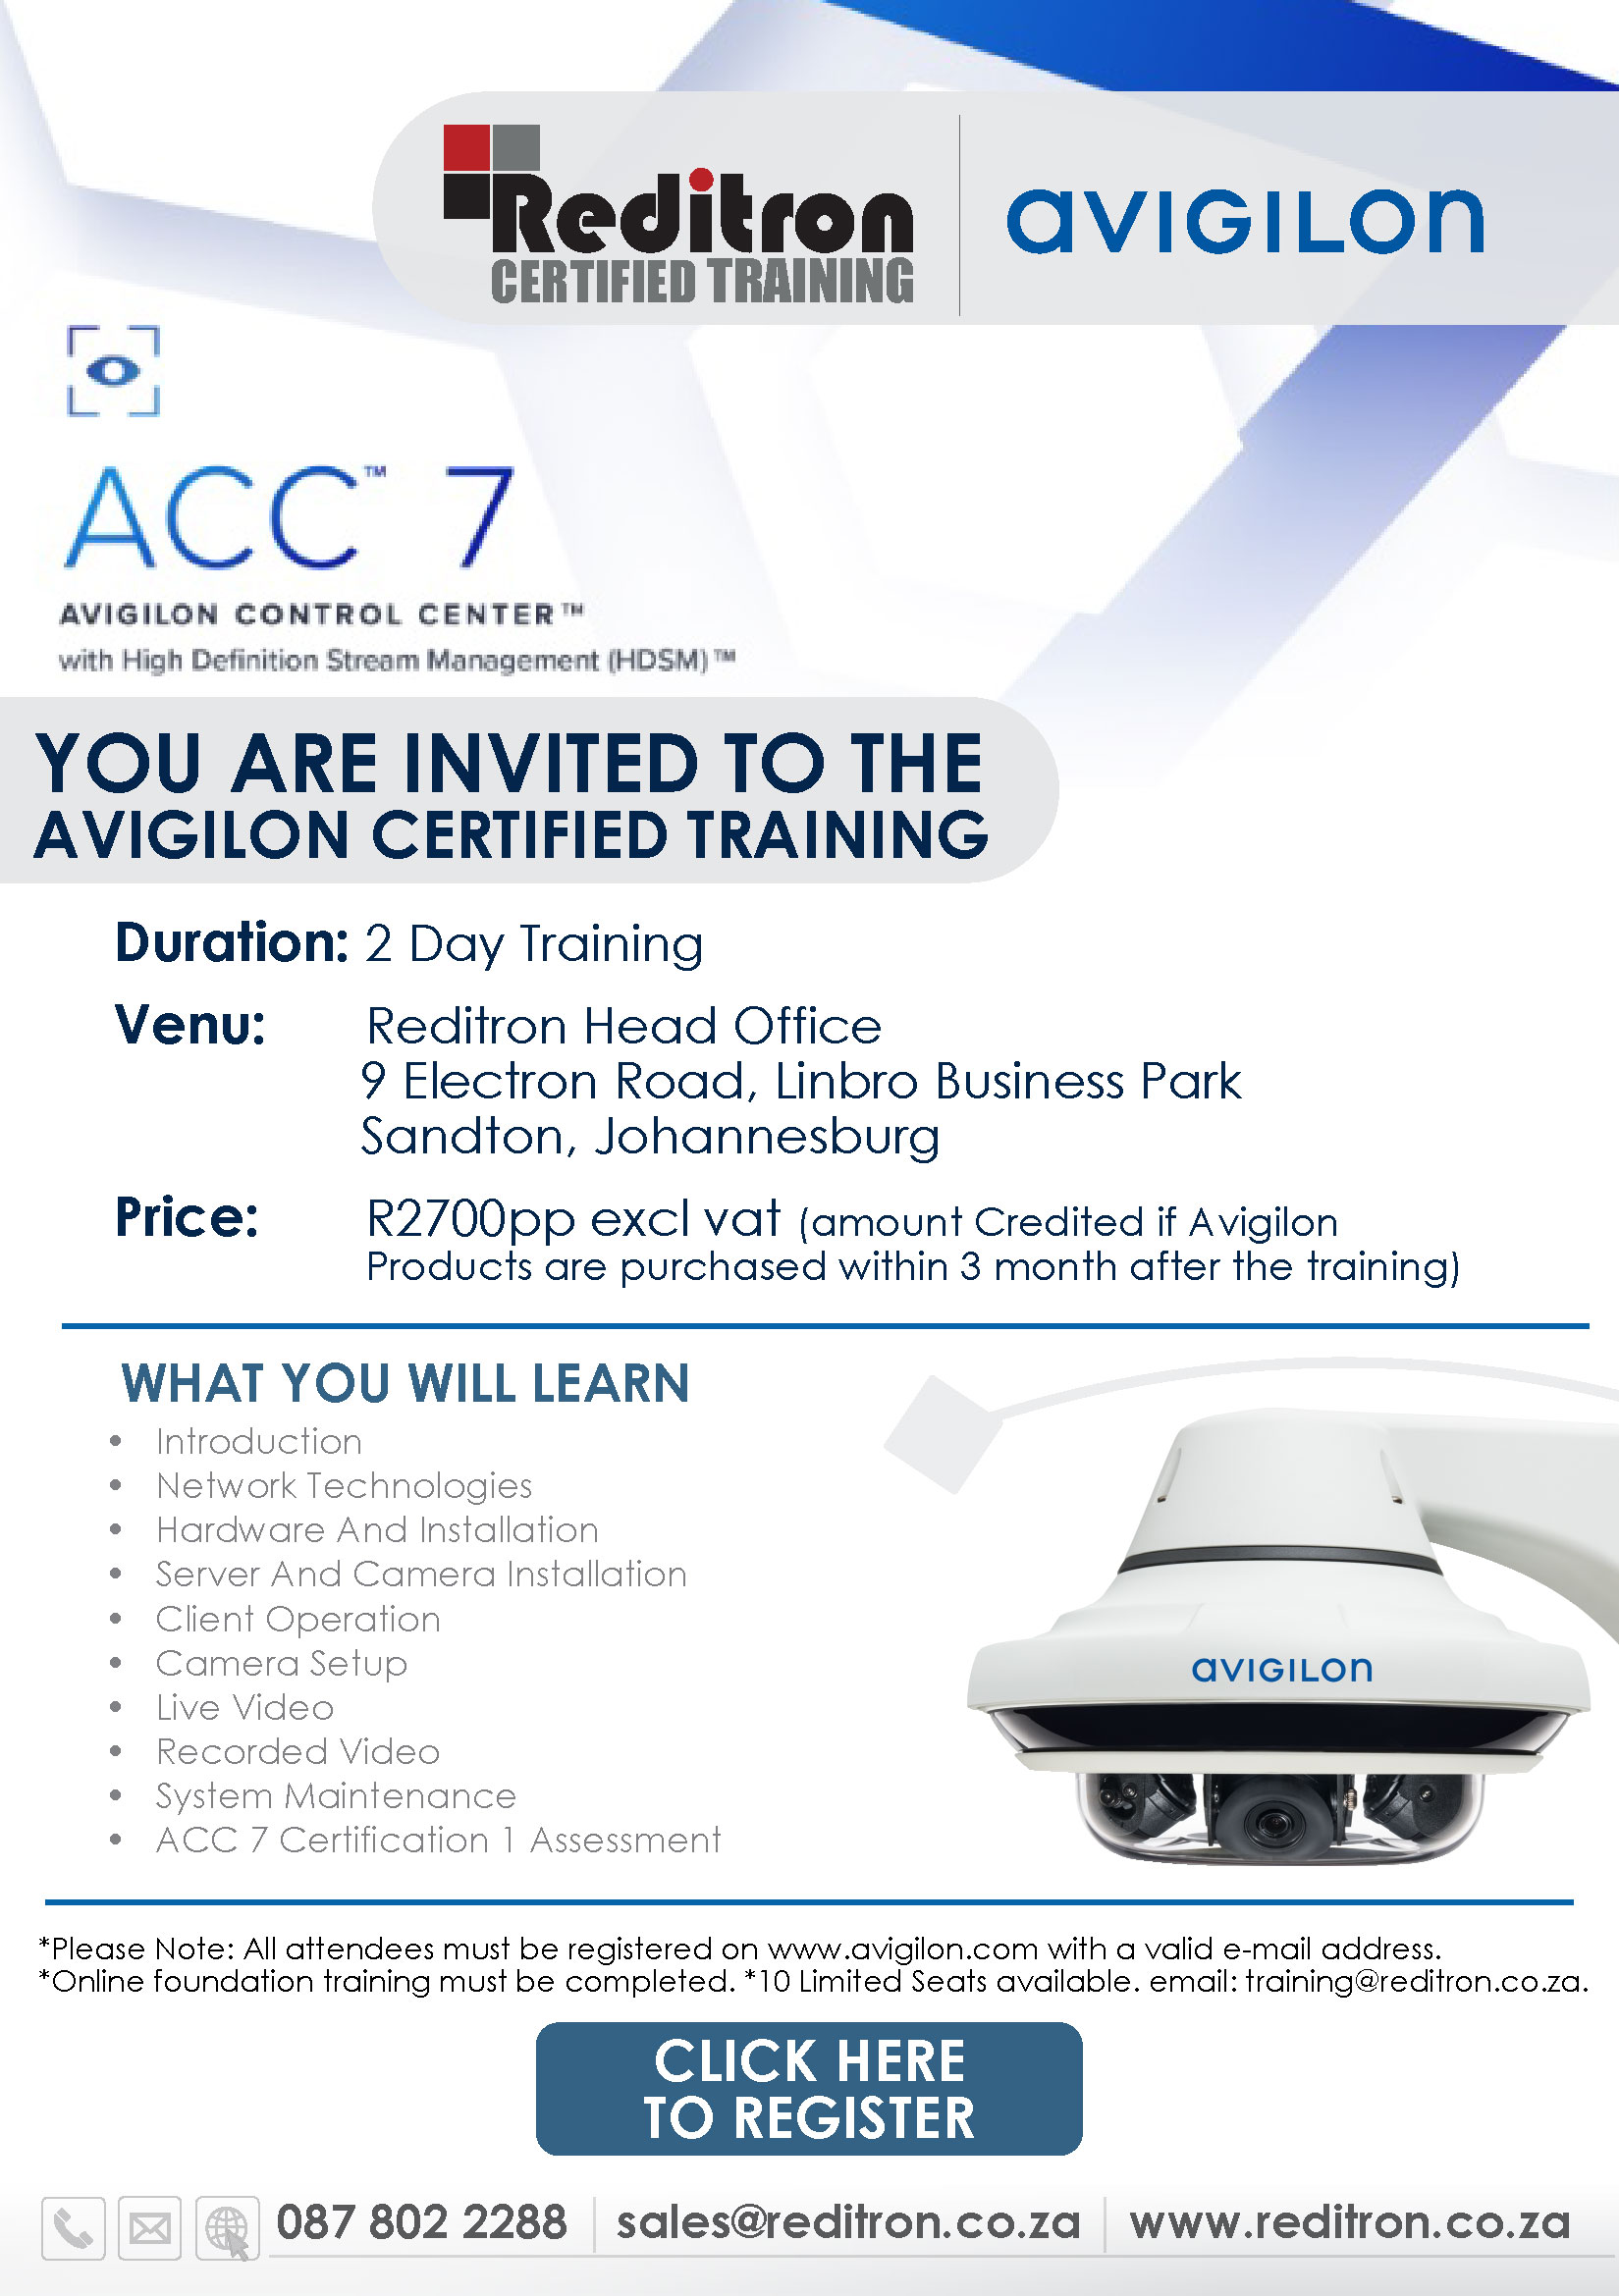 AVIGILON 7 training JHB